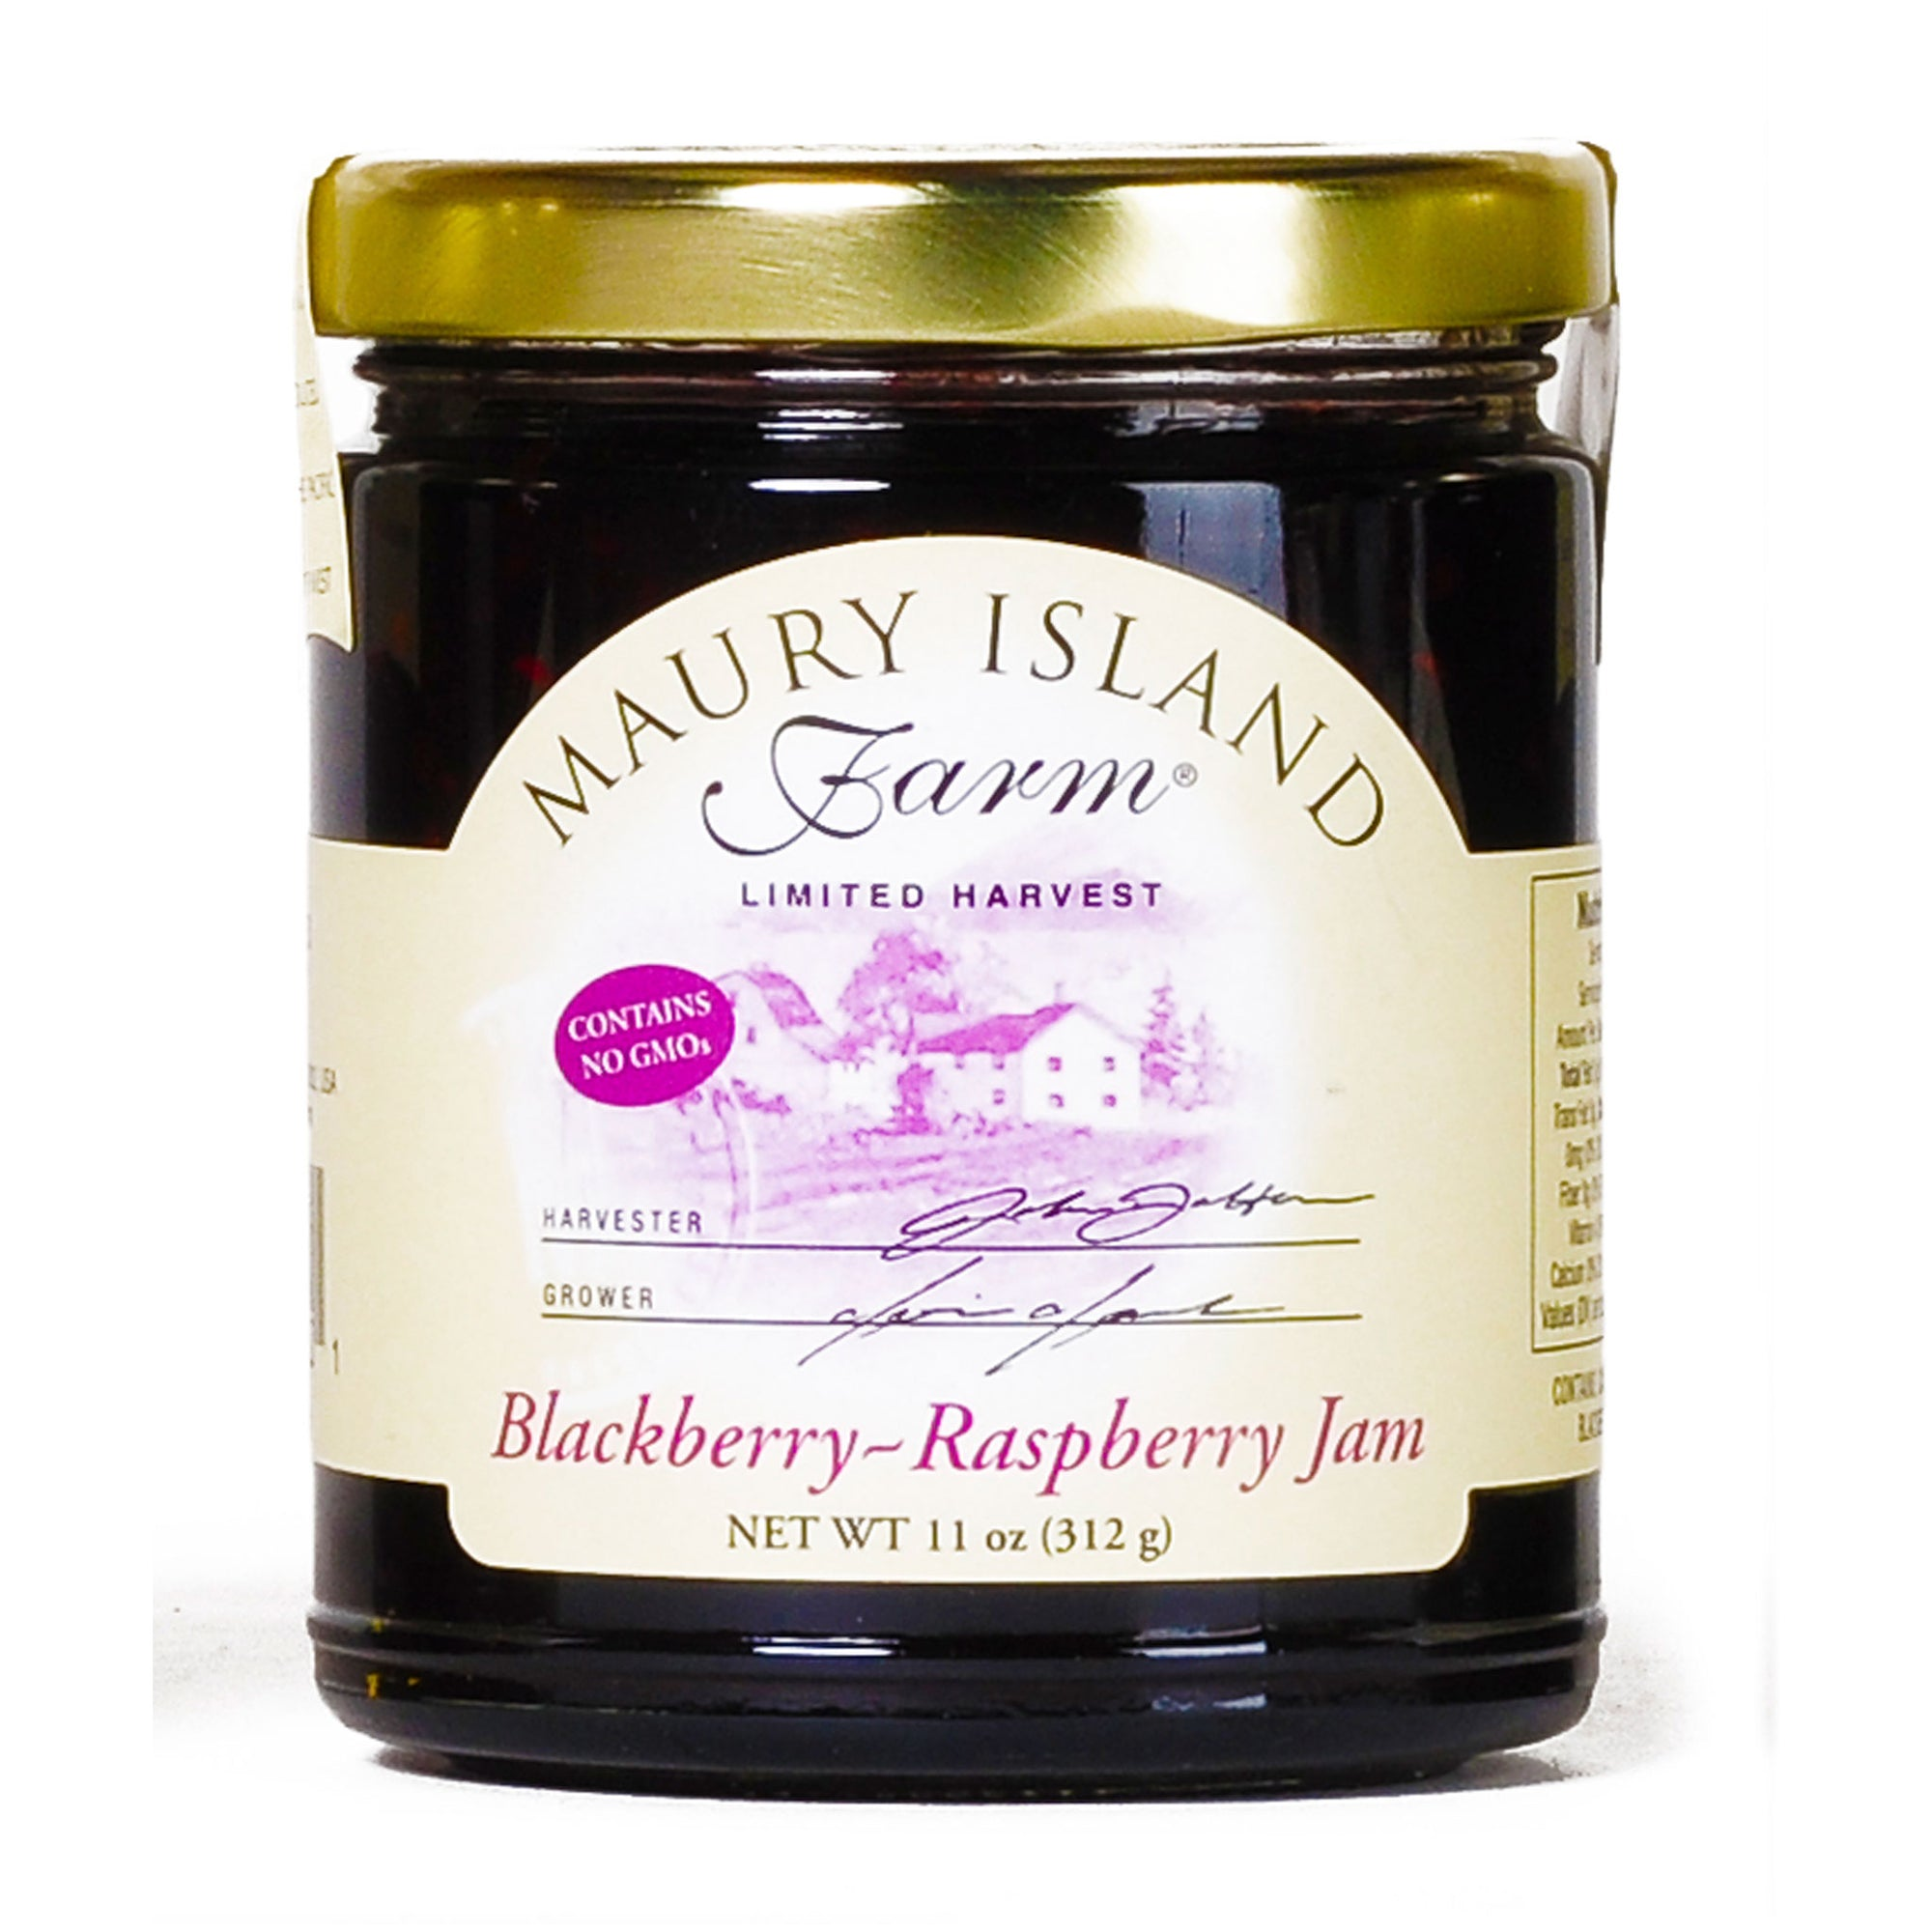 Maury Island Farm Limited harvest GMO-Free Blackberry-Raspberry Jam 11 Ounce Jar